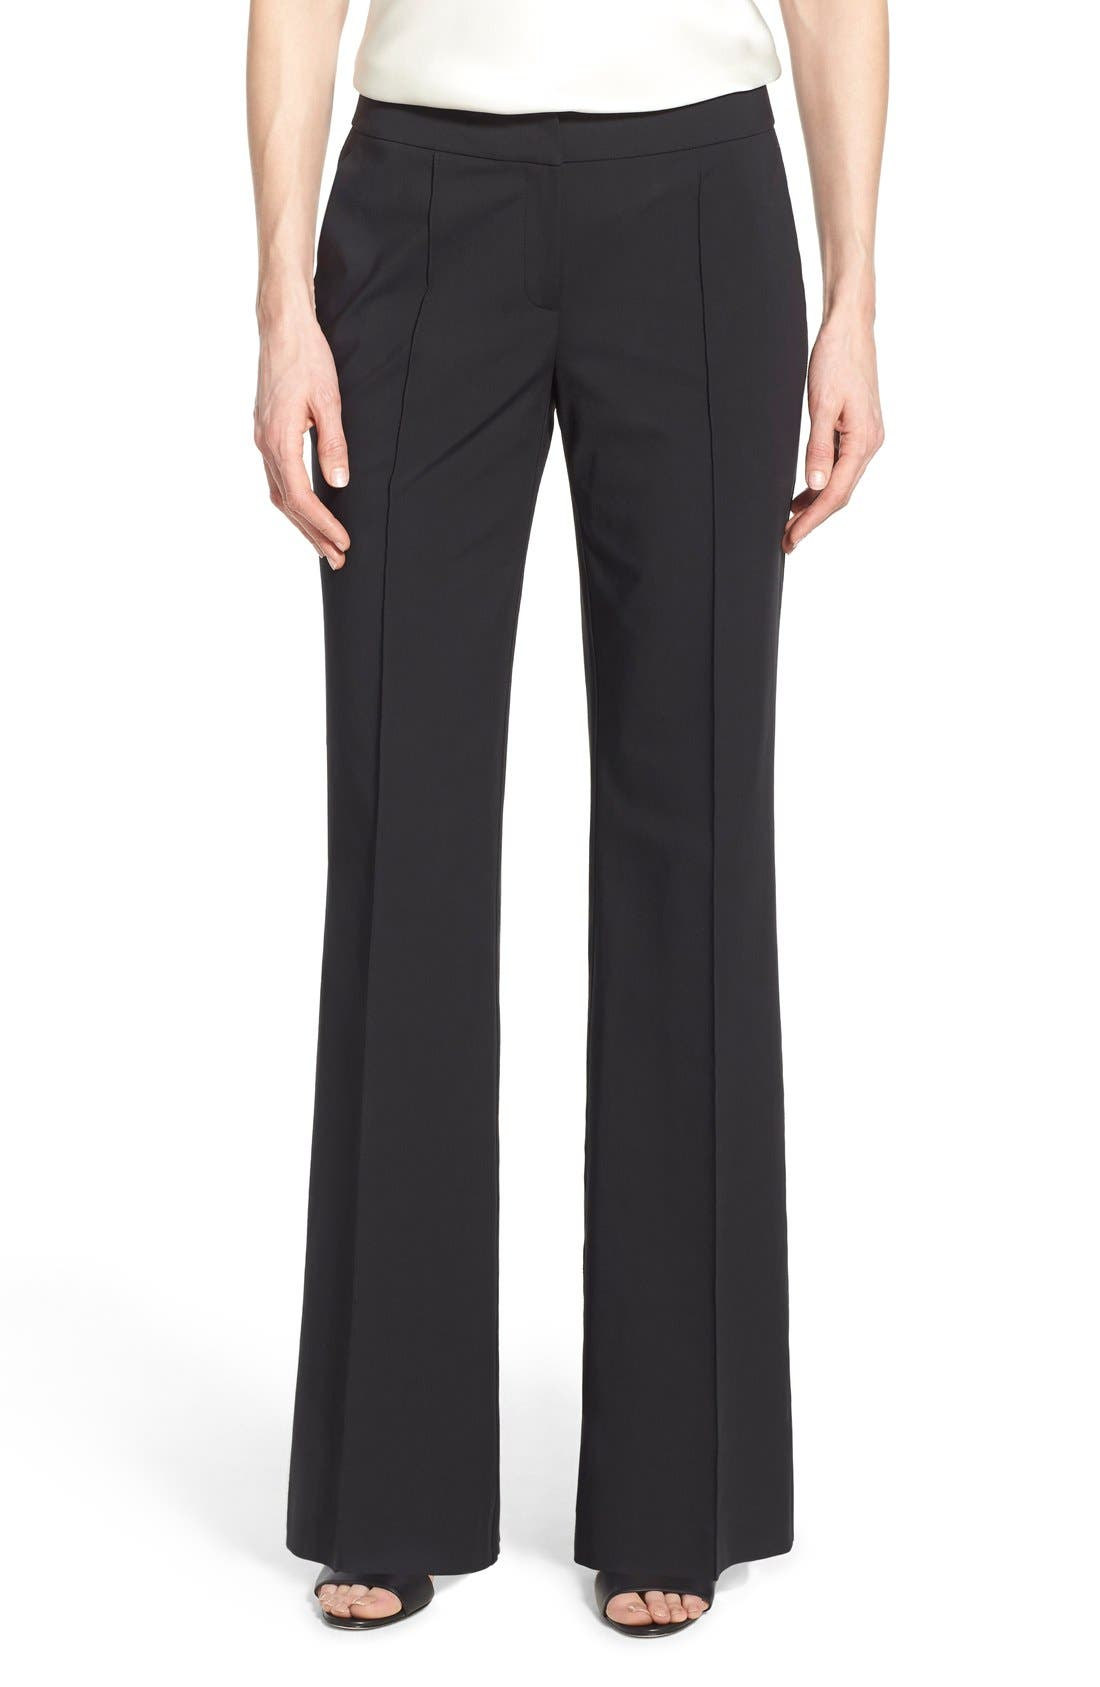 Alternate Image 1 Selected - Lafayette 148 New York 'Kenmare' Flare Leg Pants